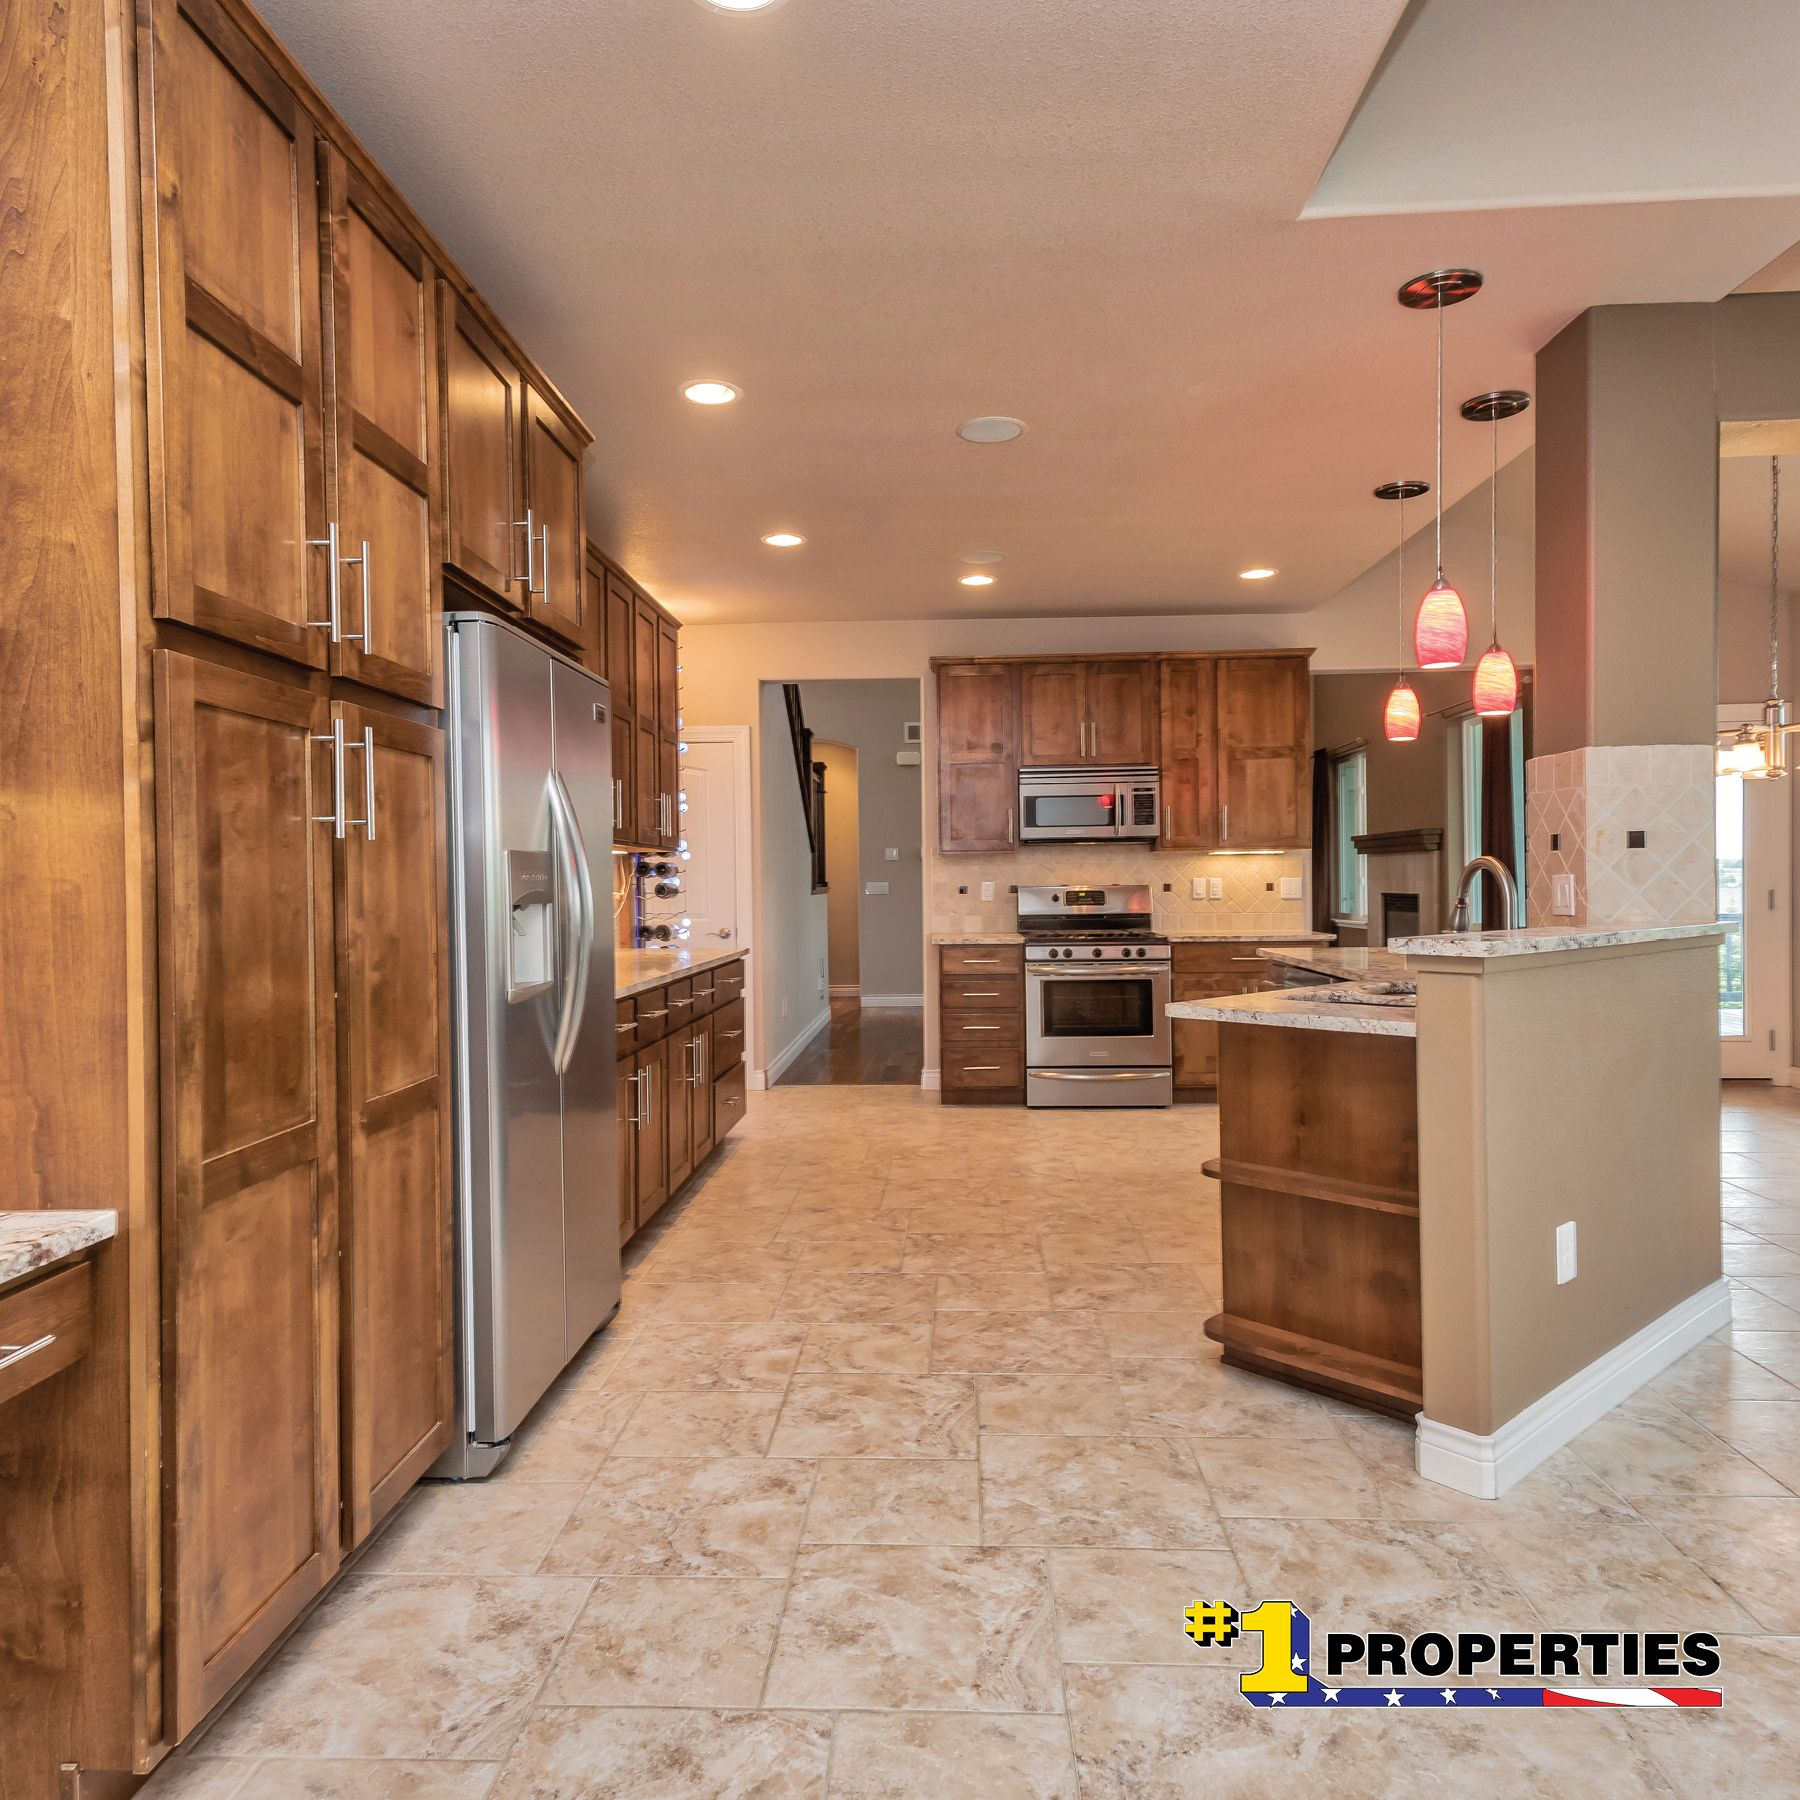 Counters And Cabinets For Days 7482 Huntz Drive Cheyenne Wyoming Cheyennehomes Realestate Househunting Realty Th Kitchen Real Estate Photography Home